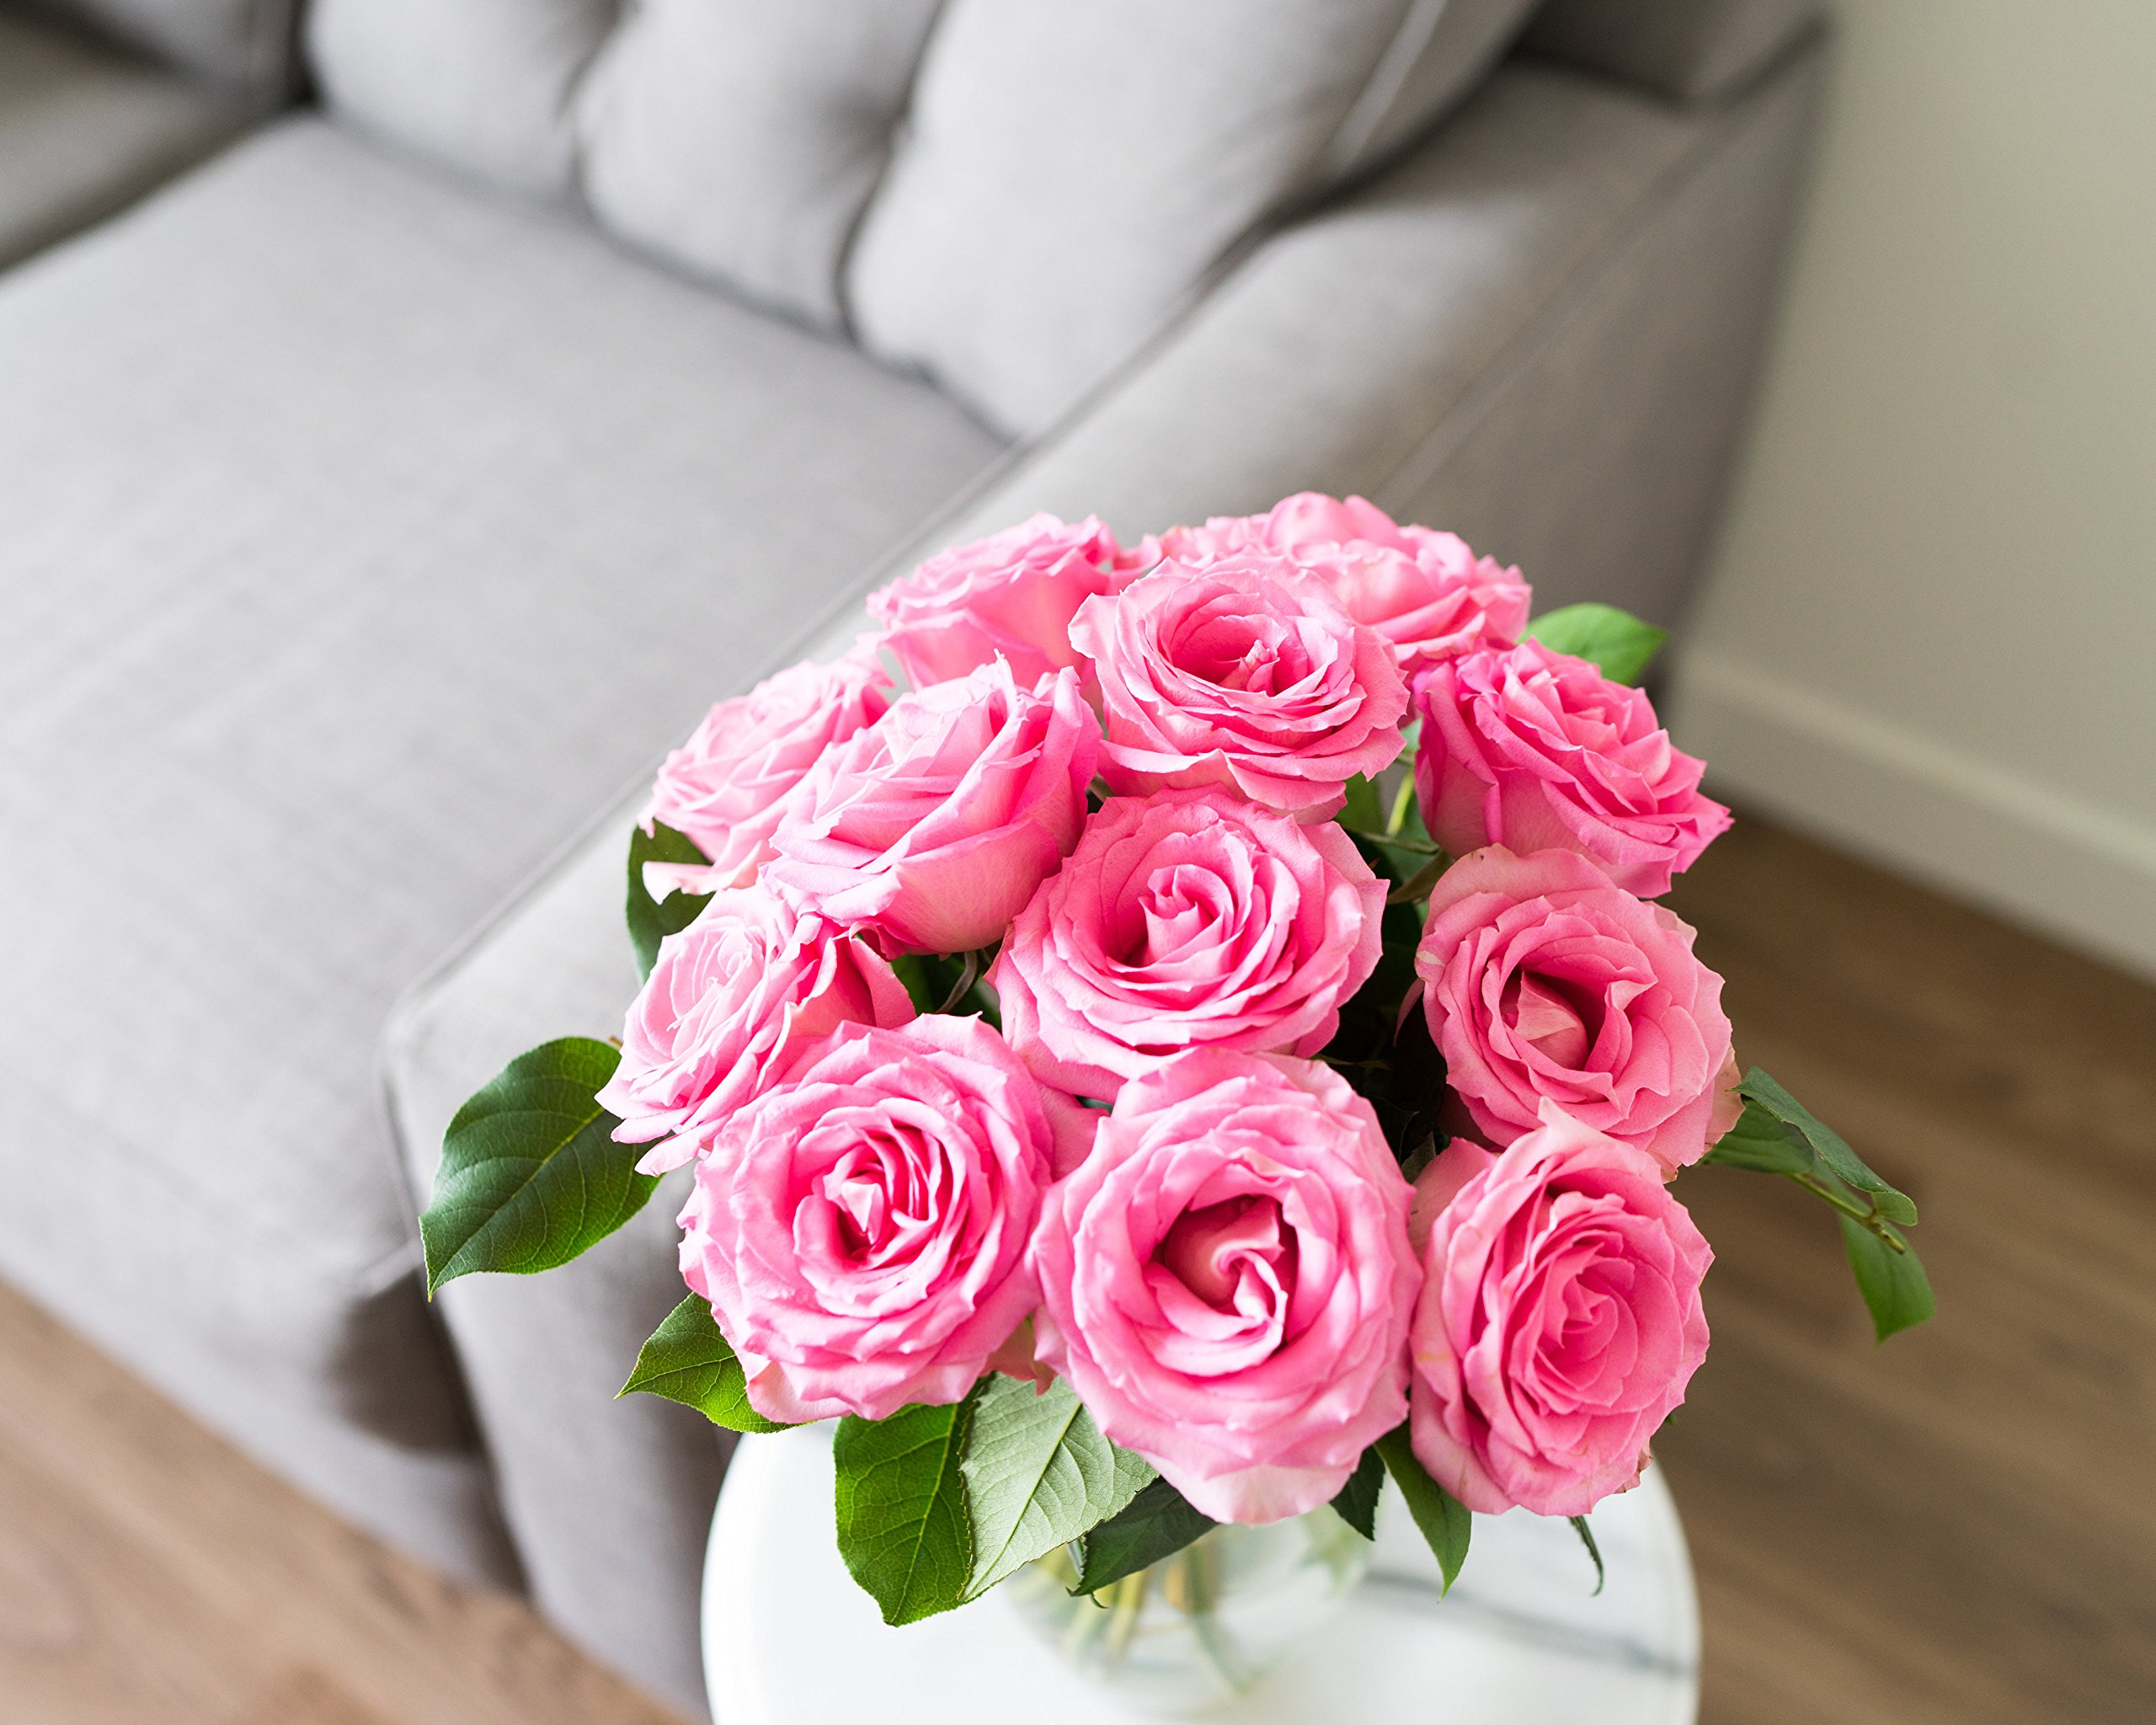 Flowers - One Dozen Light Pink Roses (Free Vase Included) by From You Flowers (Image #4)